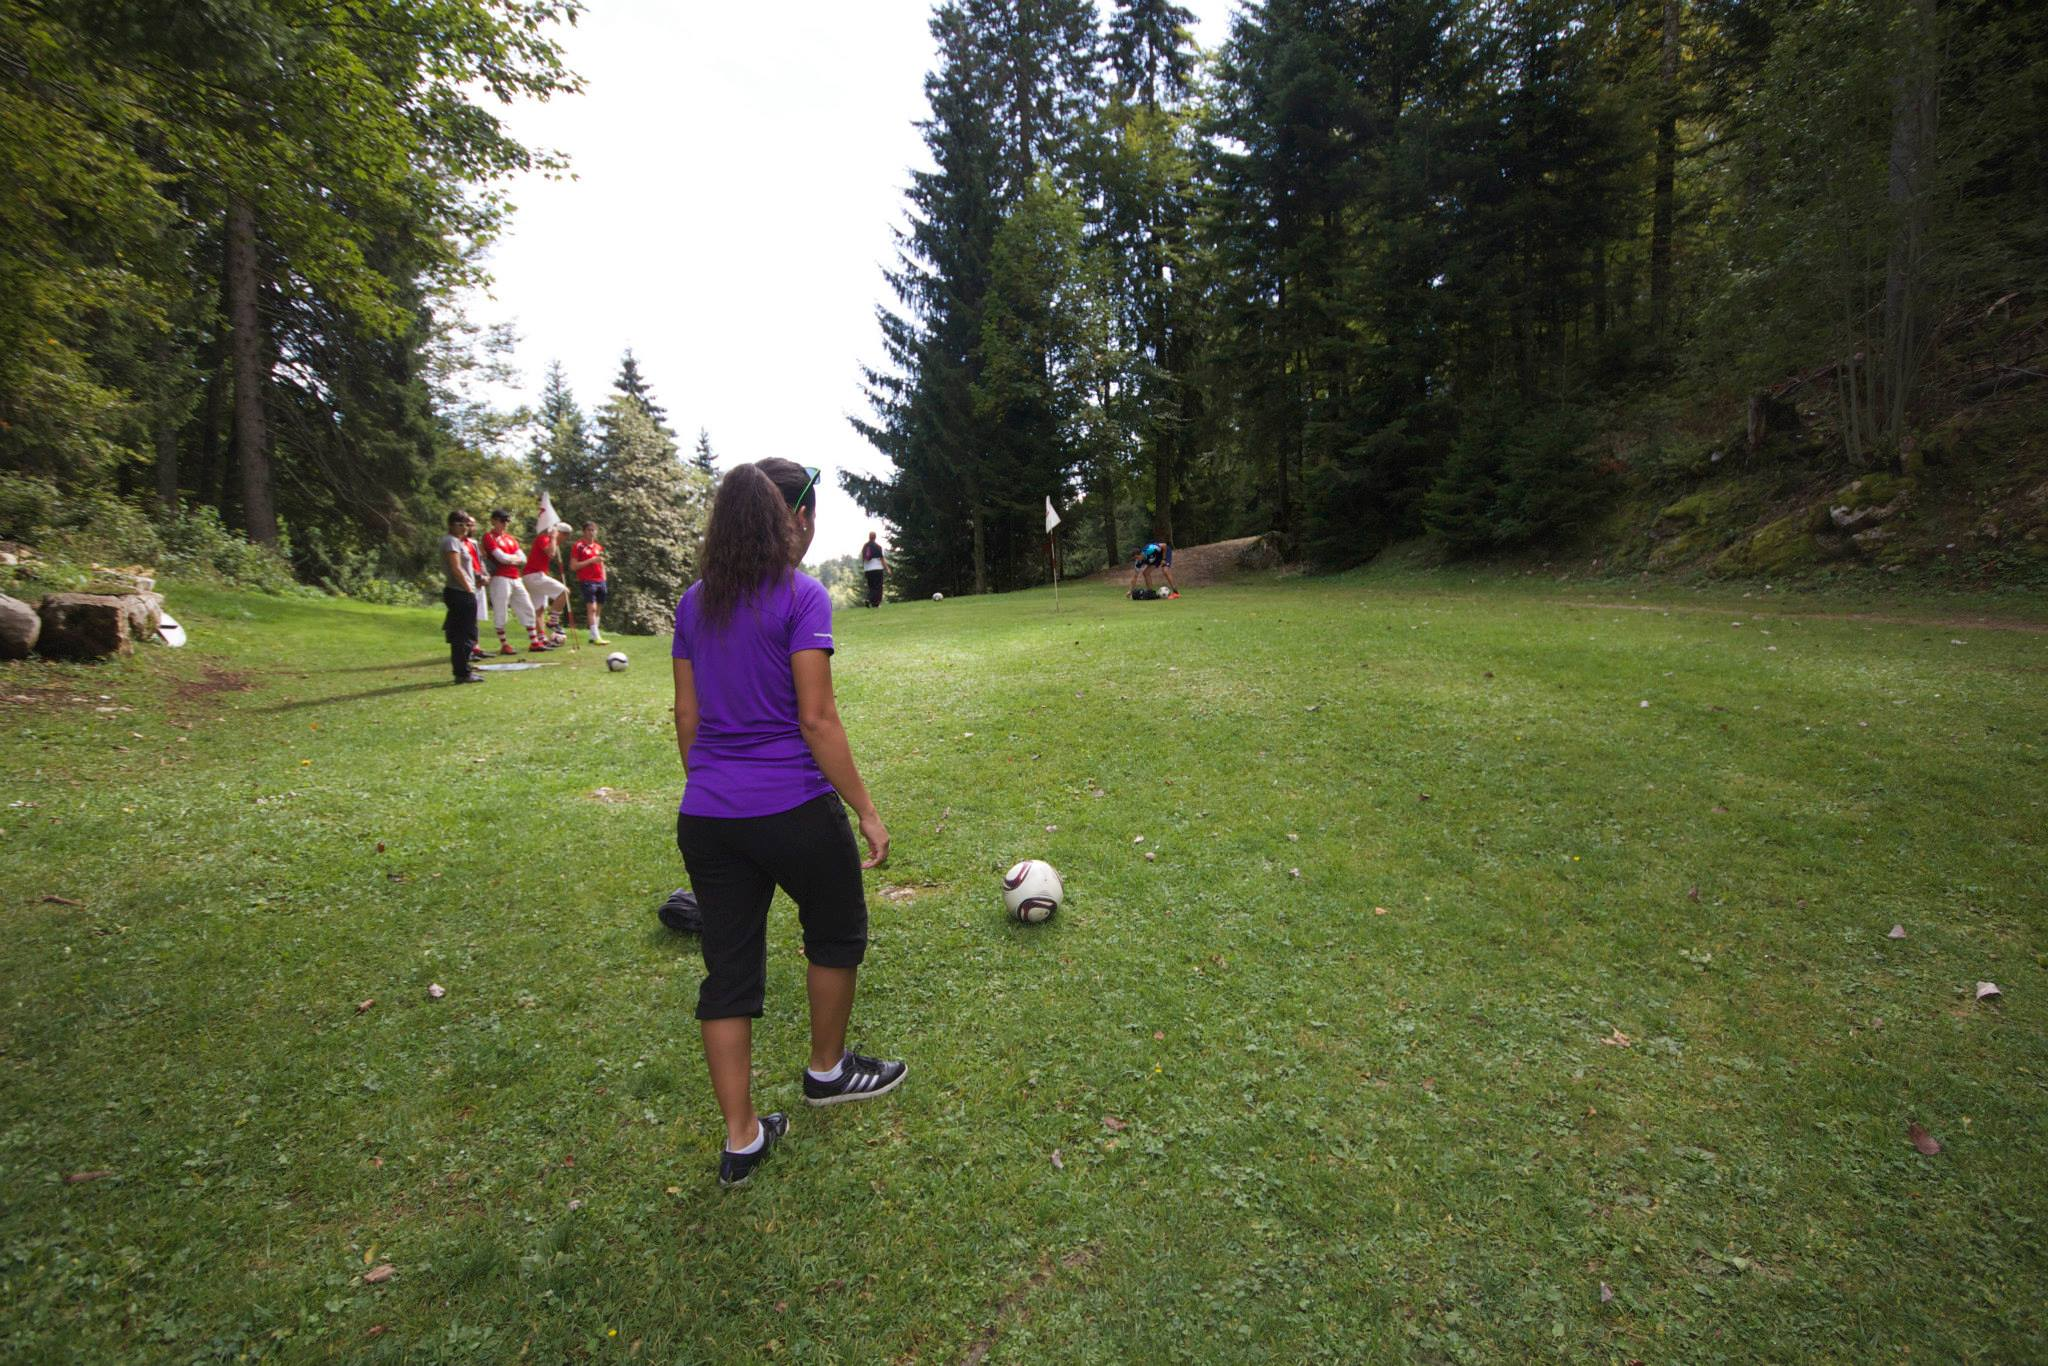 st-cergue footgolf